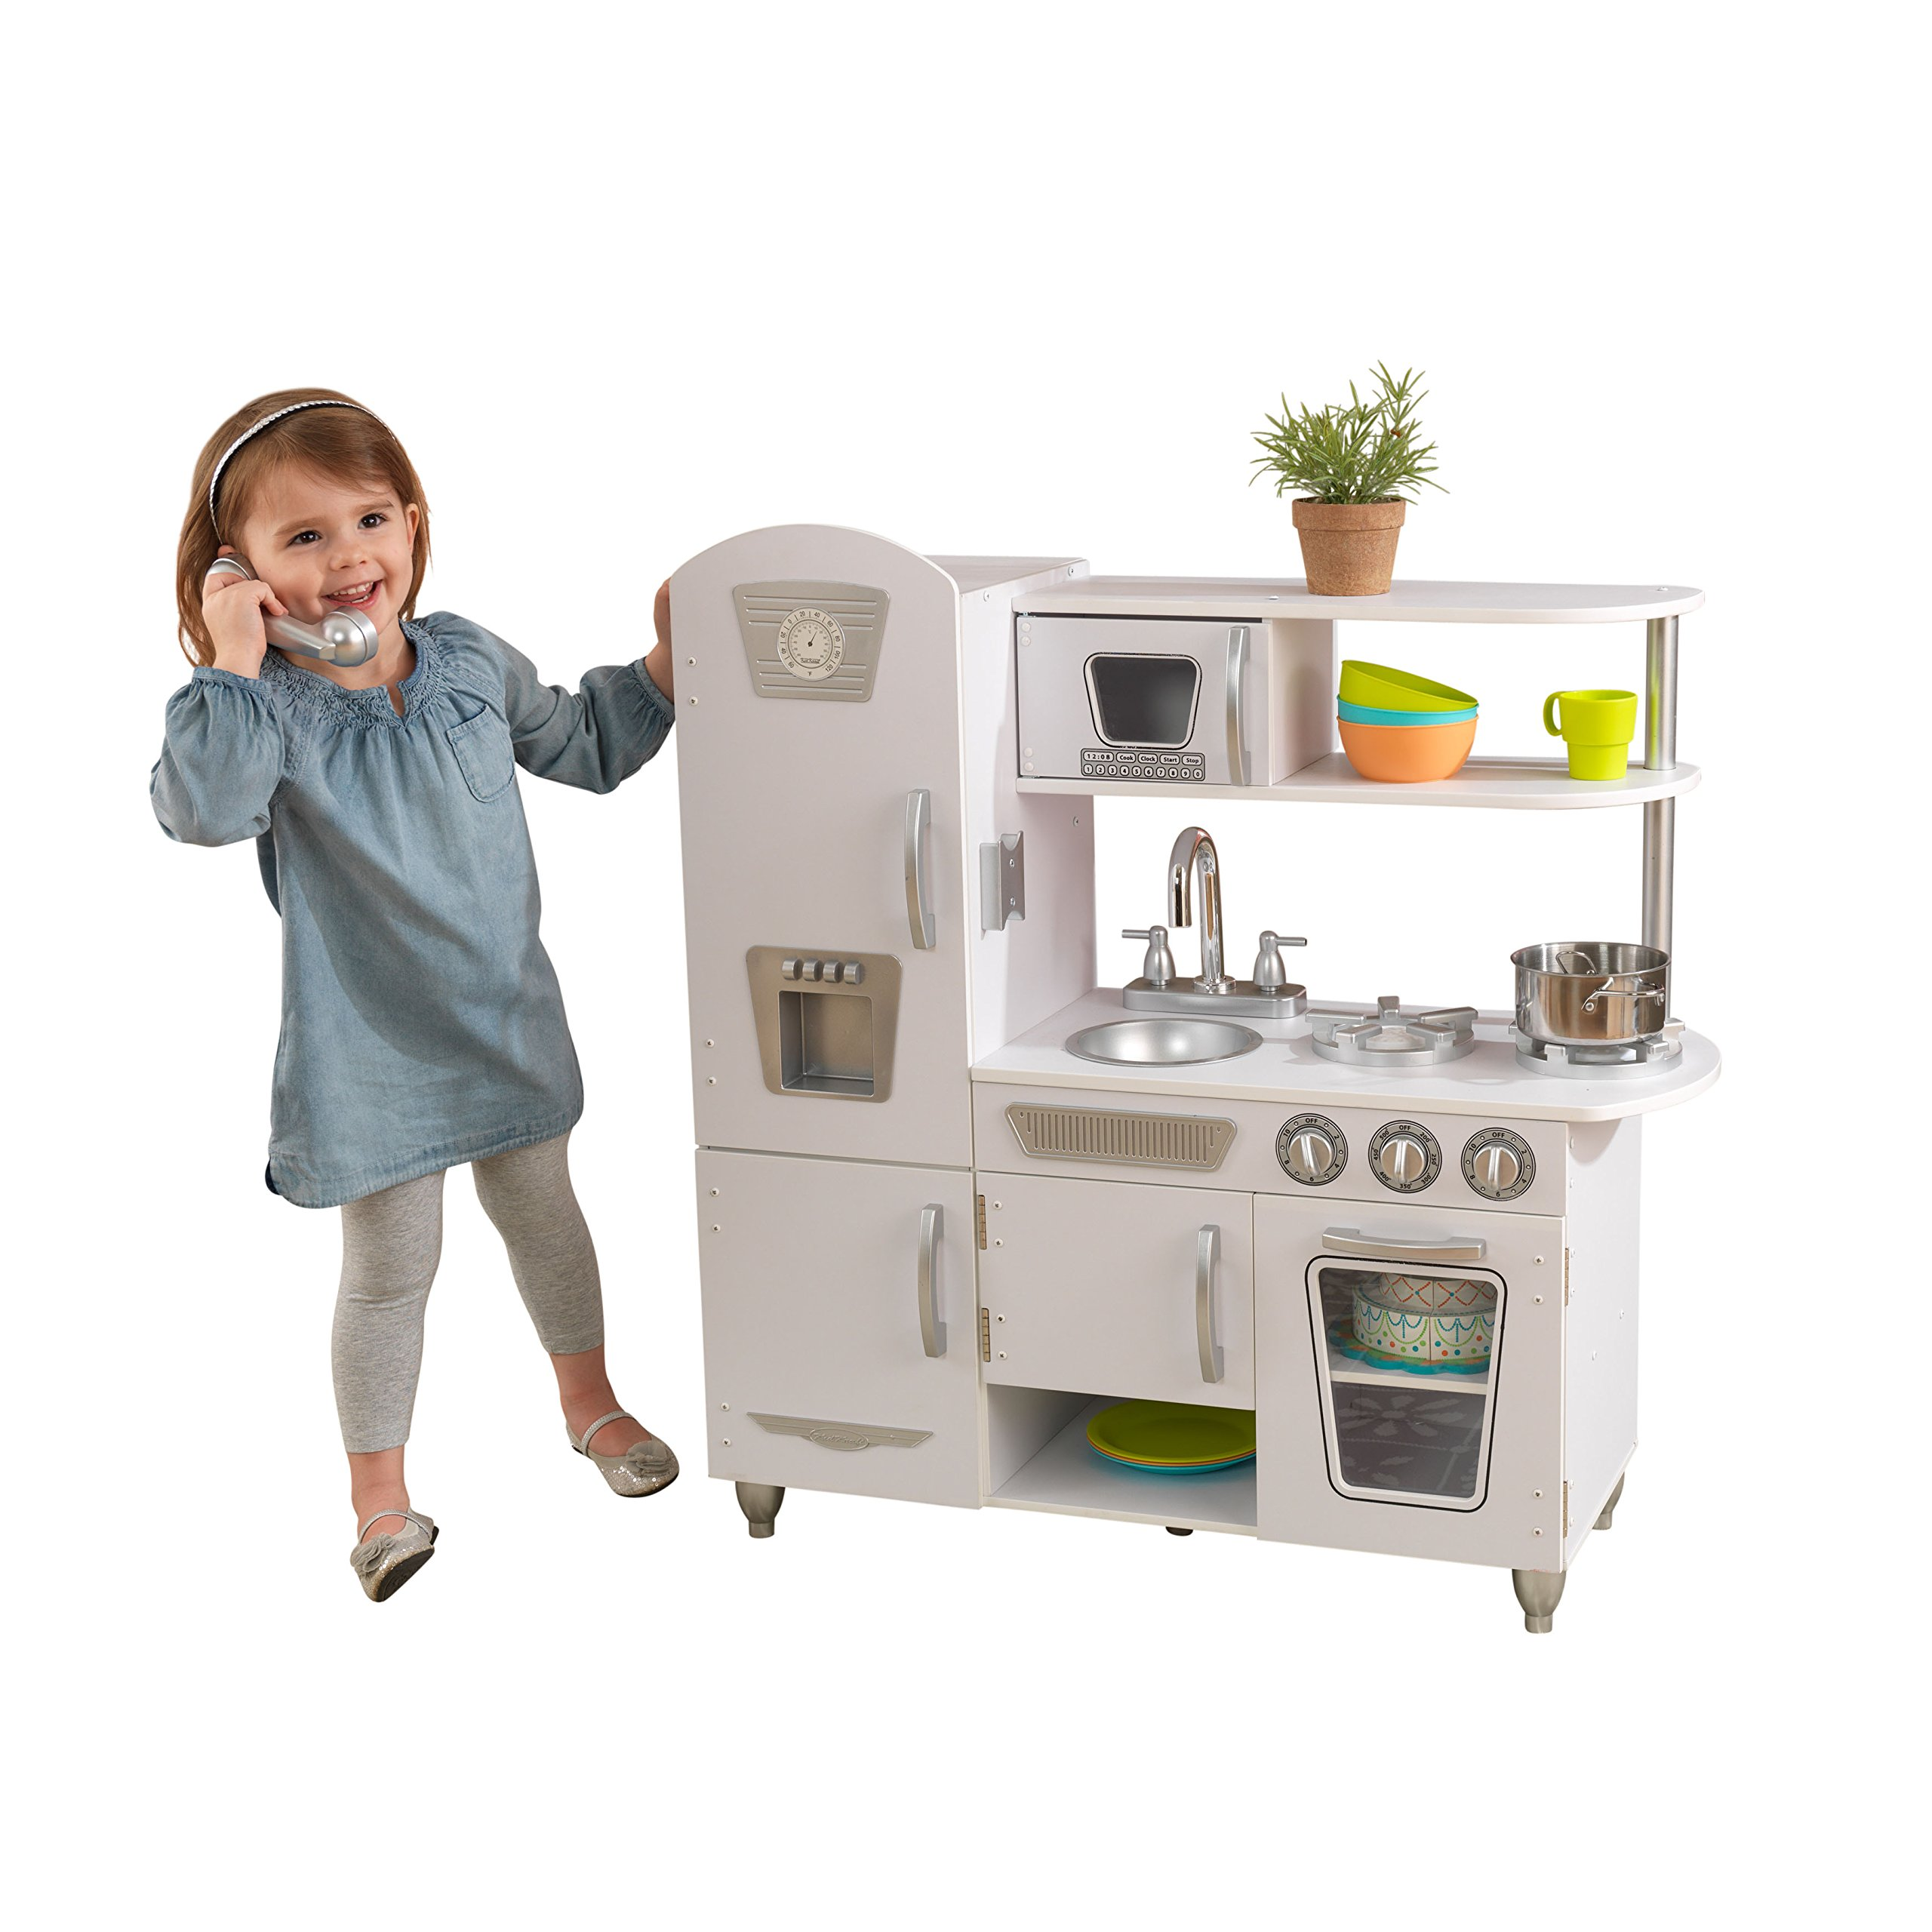 KidKraft Vintage Kitchen - White by KidKraft